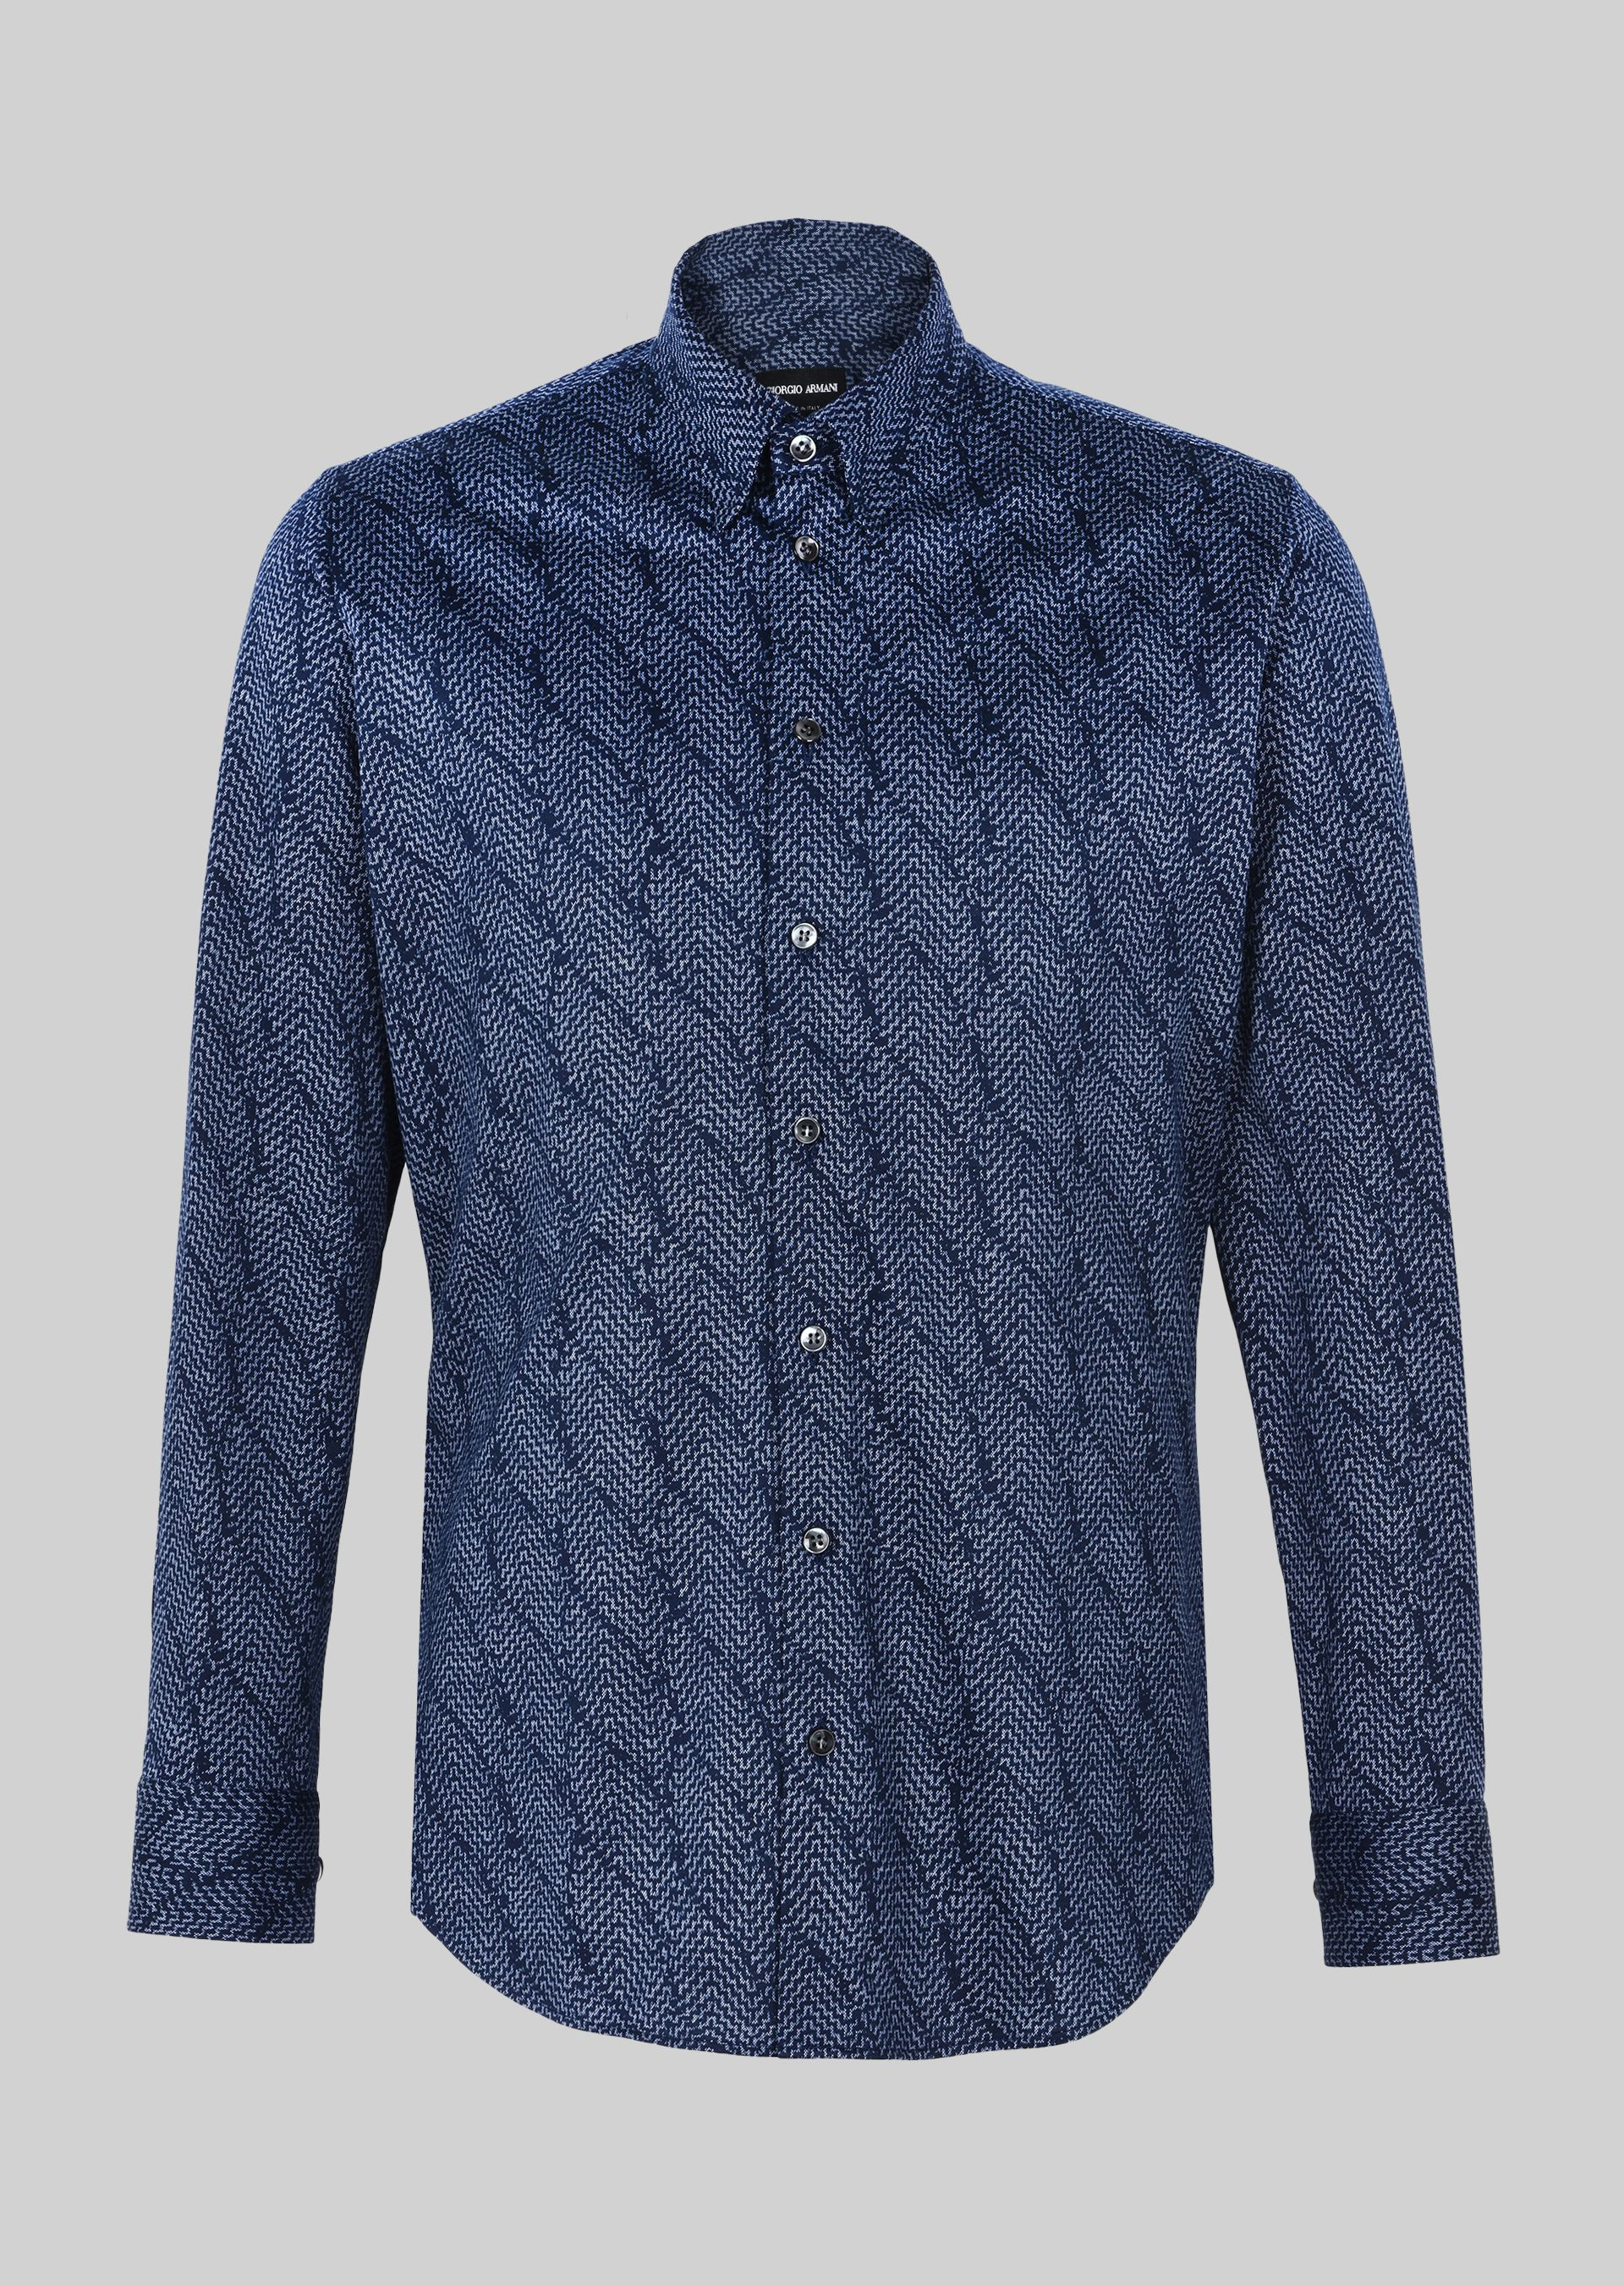 georgio armani shirt